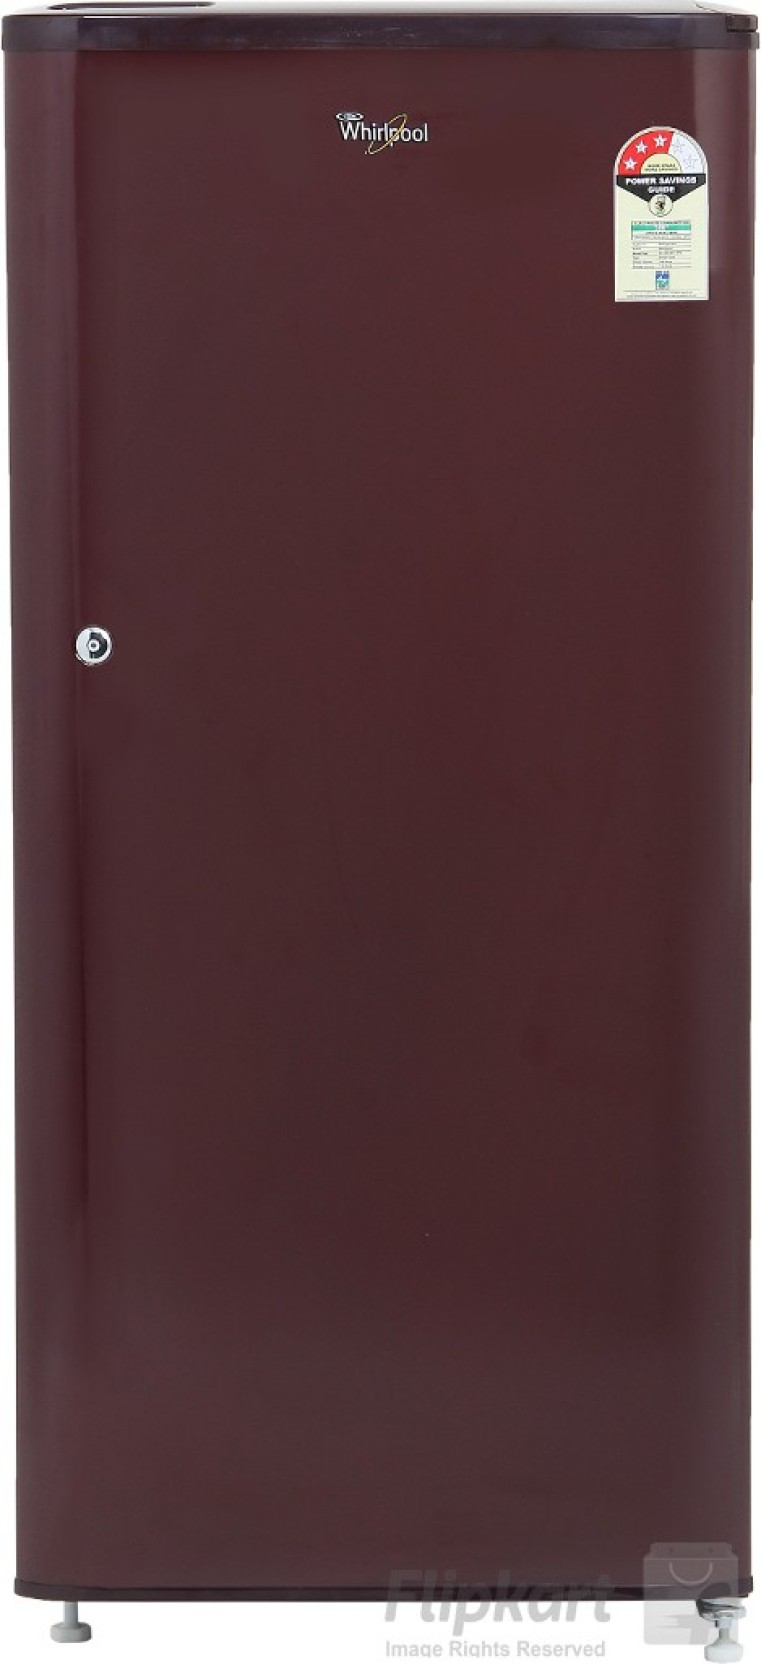 Whirlpool 190 L Direct Cool Single Door 3 Star Refrigerator Online Automatic Street Light Circuit Diagram Add To Cart